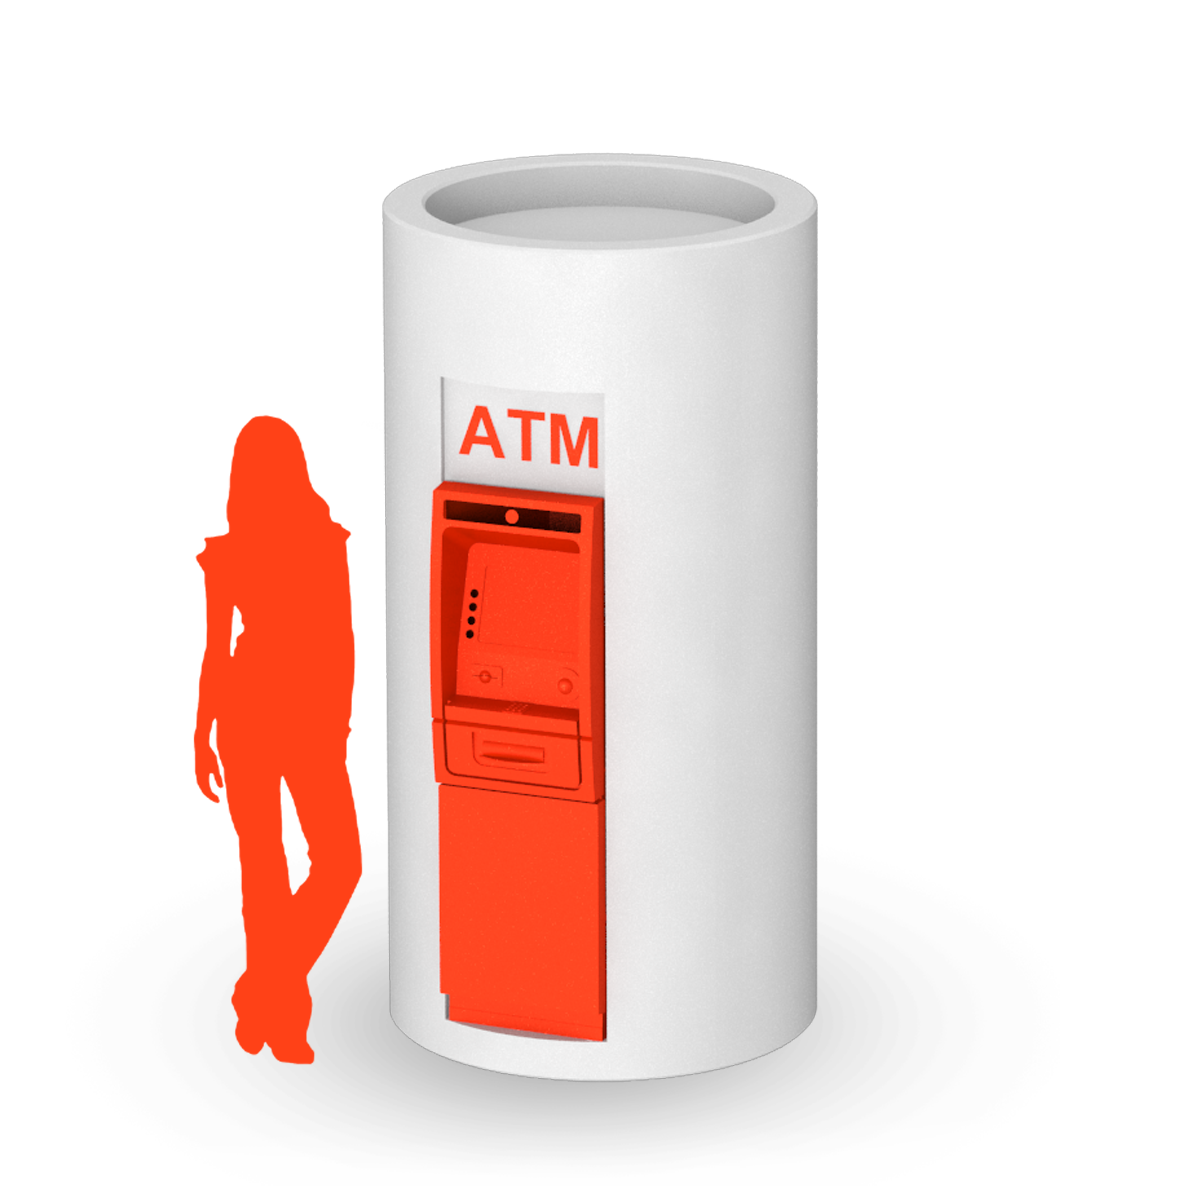 ATM compact